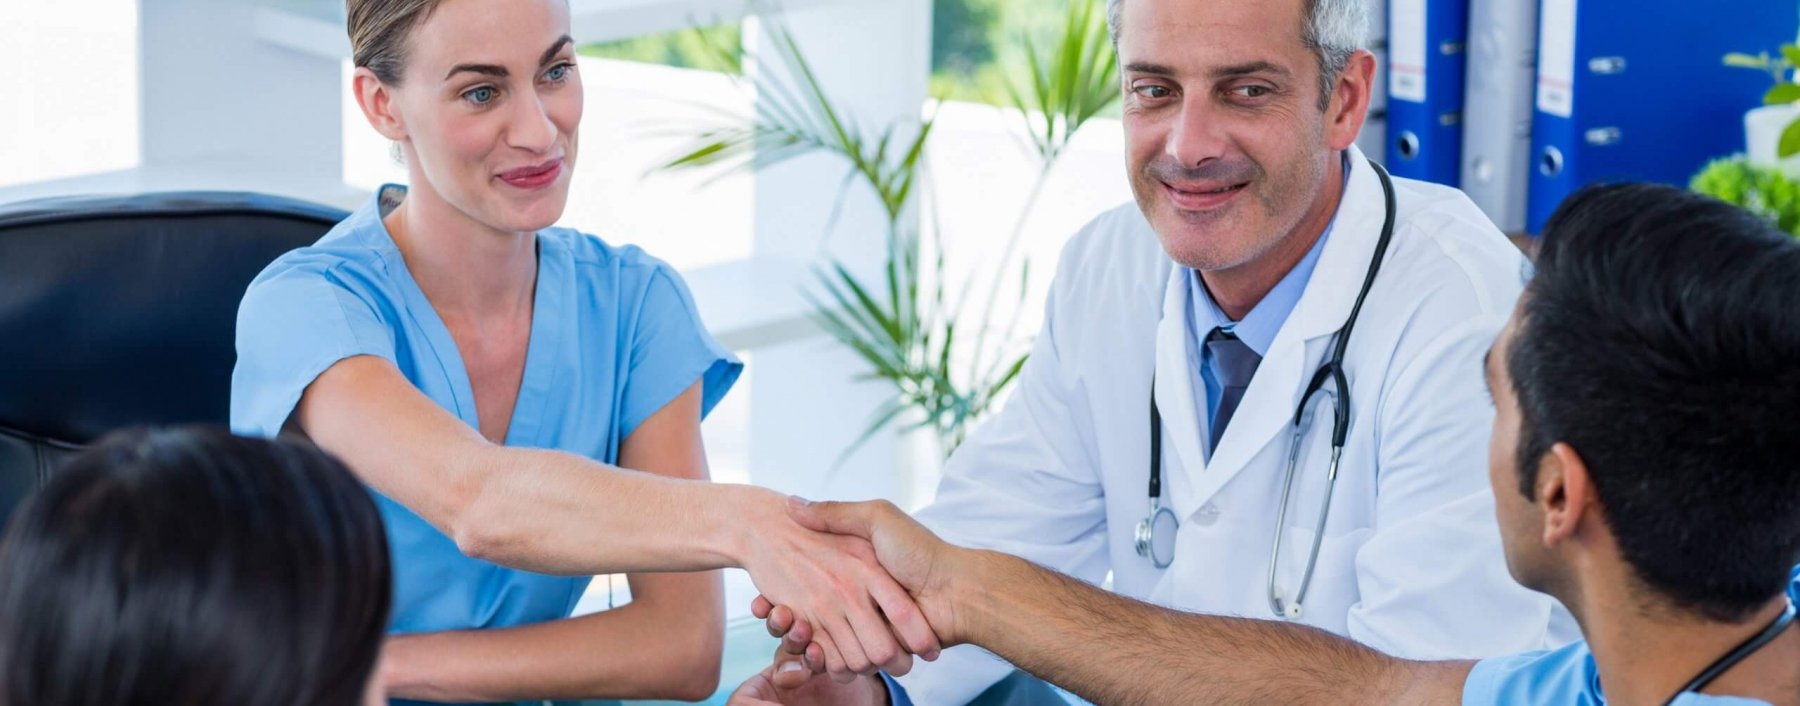 Conflict Resolution in Nursing: How Strong Leadership Can Help